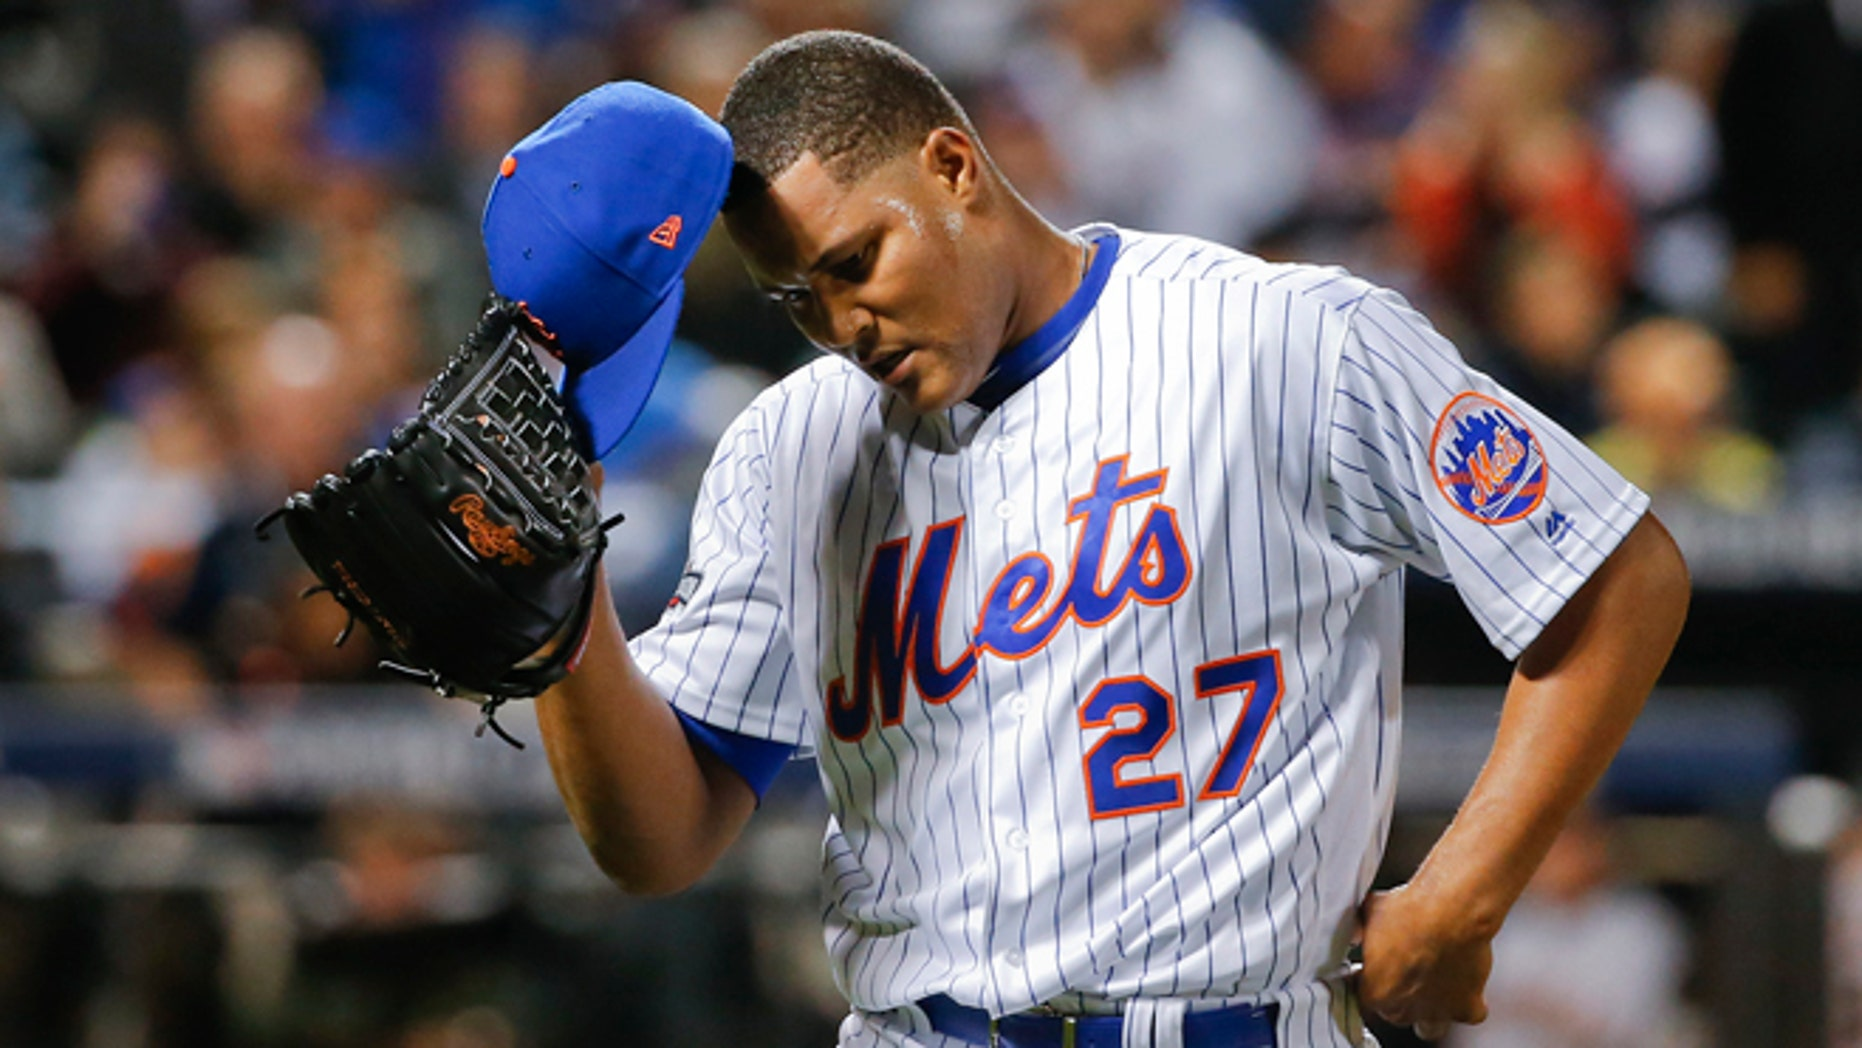 NY Mets relief pitcher Jeurys Familia during the National League wild-card baseball game on Oct. 5, 2016.